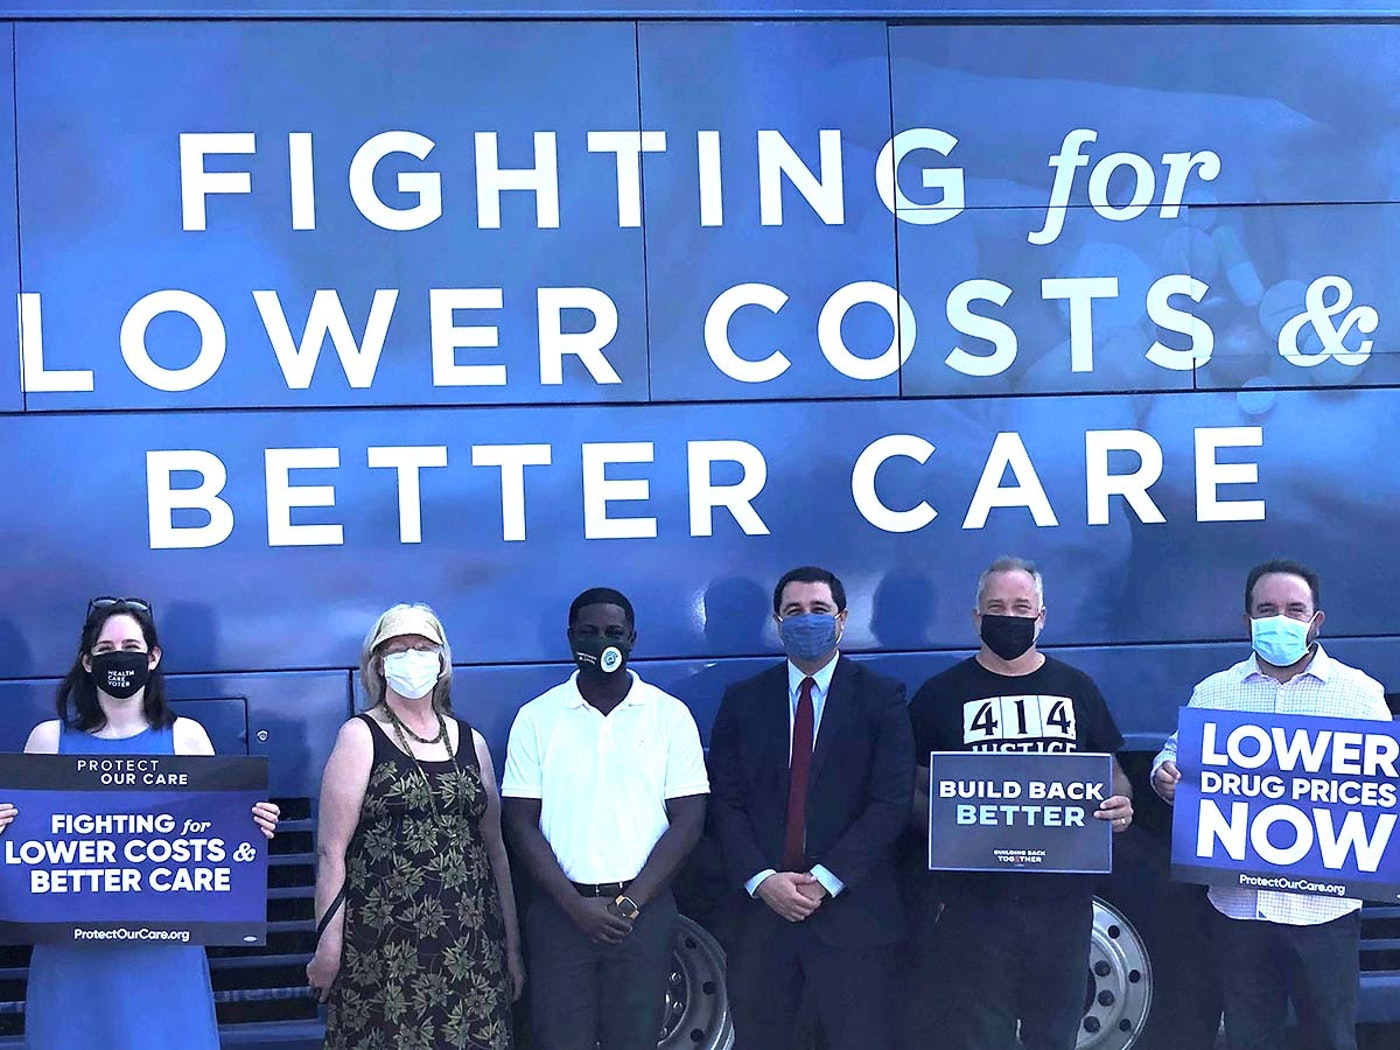 Milwaukee County Executive David Crowley, center in white shirt, says that while communities like Milwaukee are national leaders in fighting healthcare disparities, they need help from federal elected officials to fully achieve their goals. (Photo courtesy of Protect Our Care)